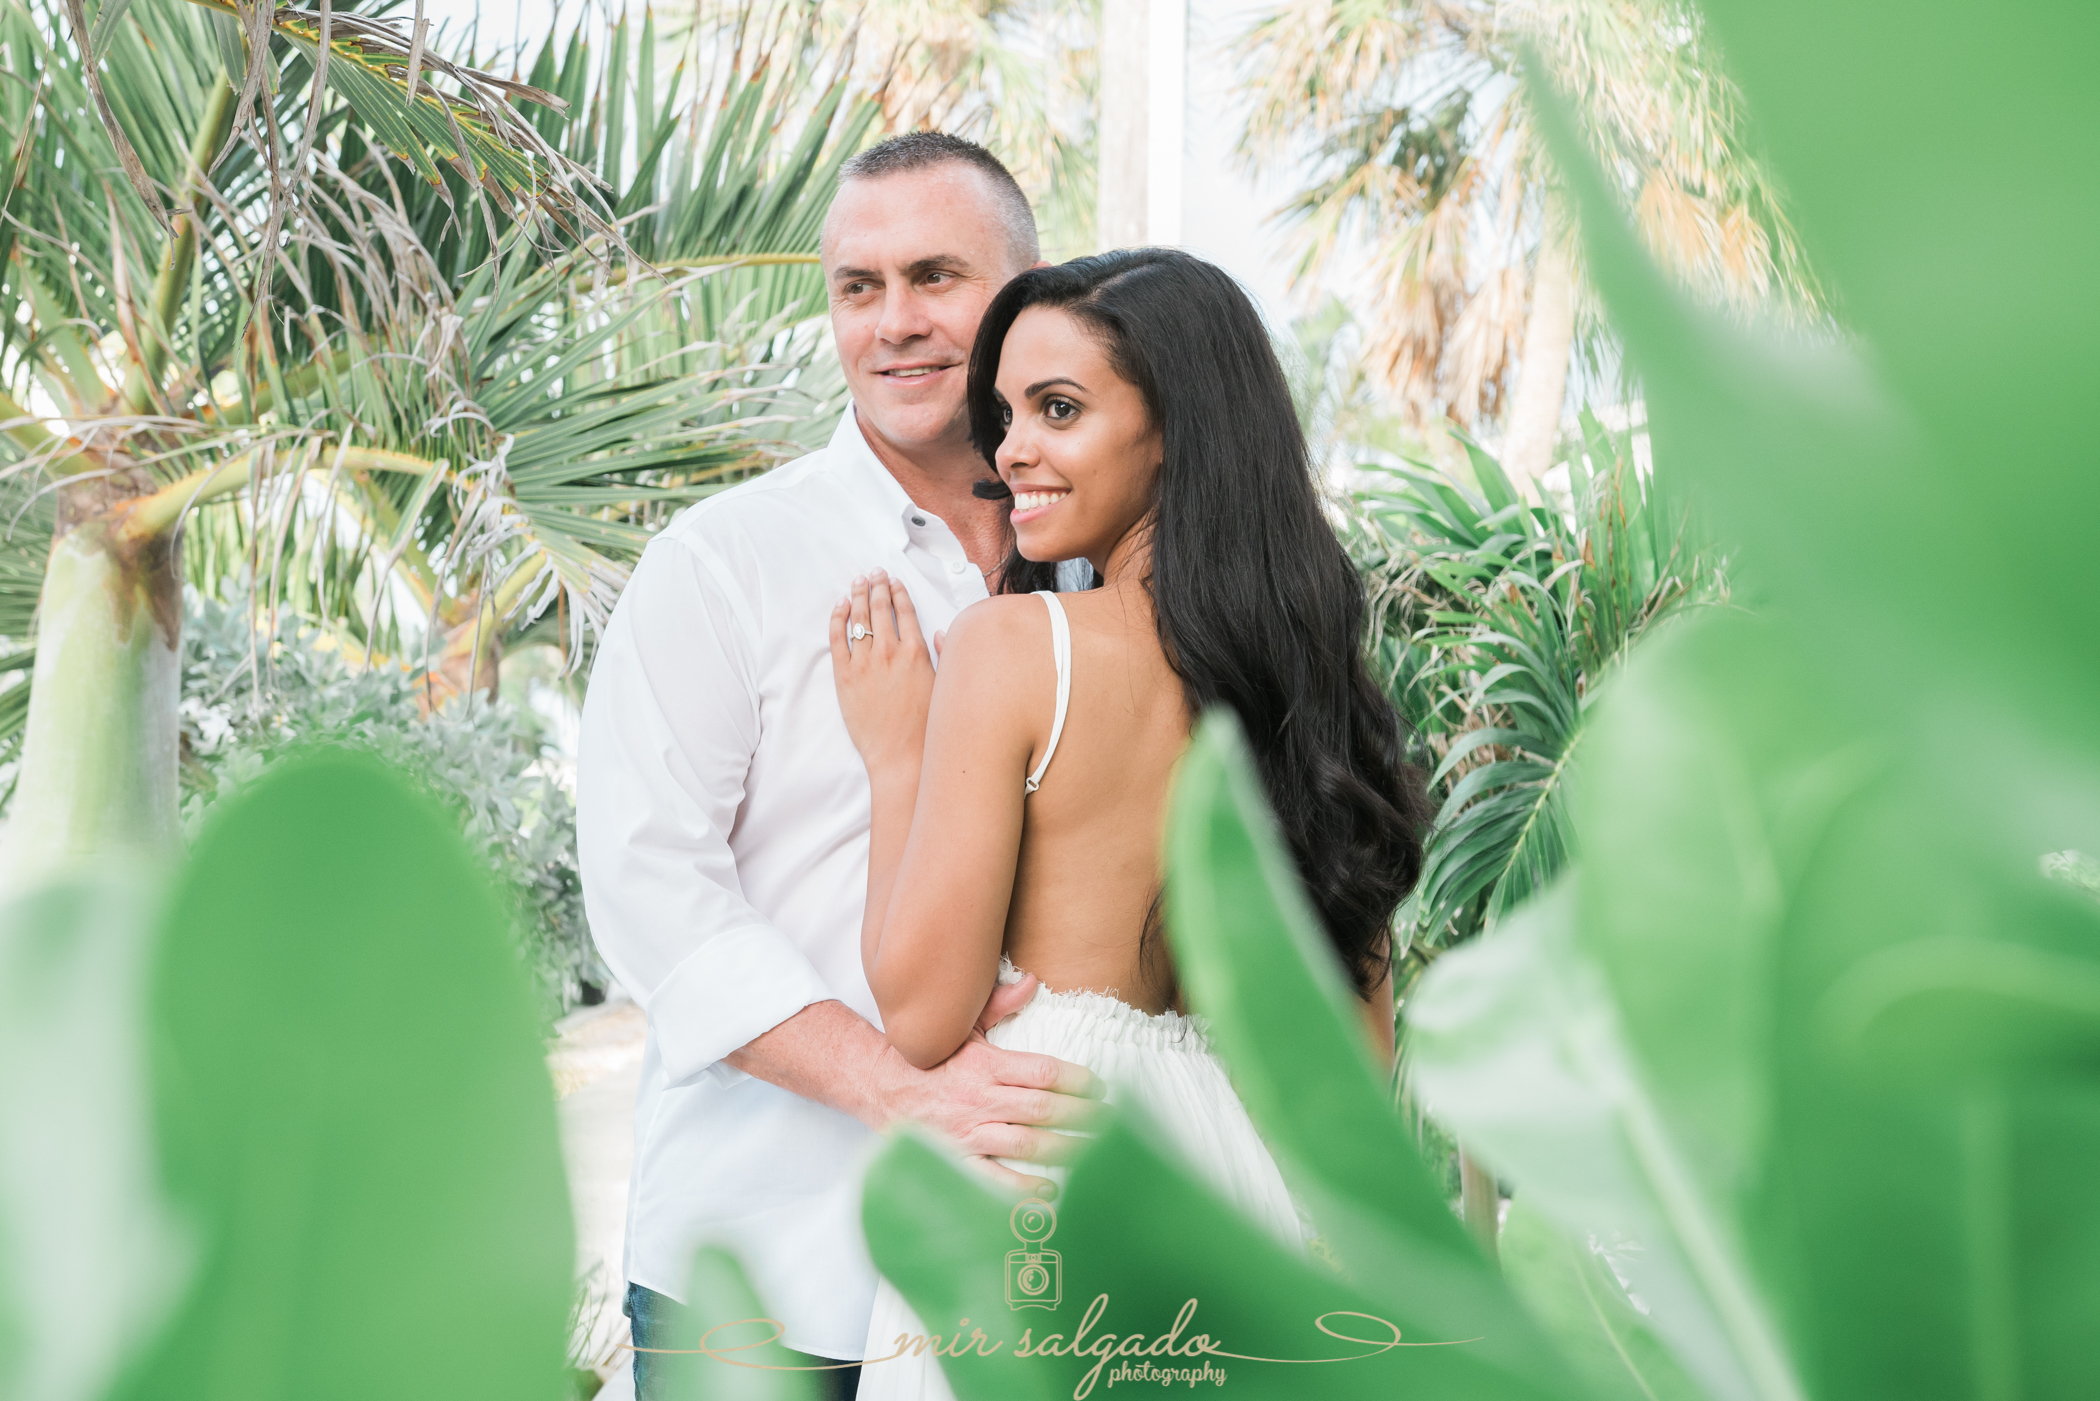 tampa-nature-engagement-photoshoot, color-coordinated-engagement-photos, tampa-wedding-photographer